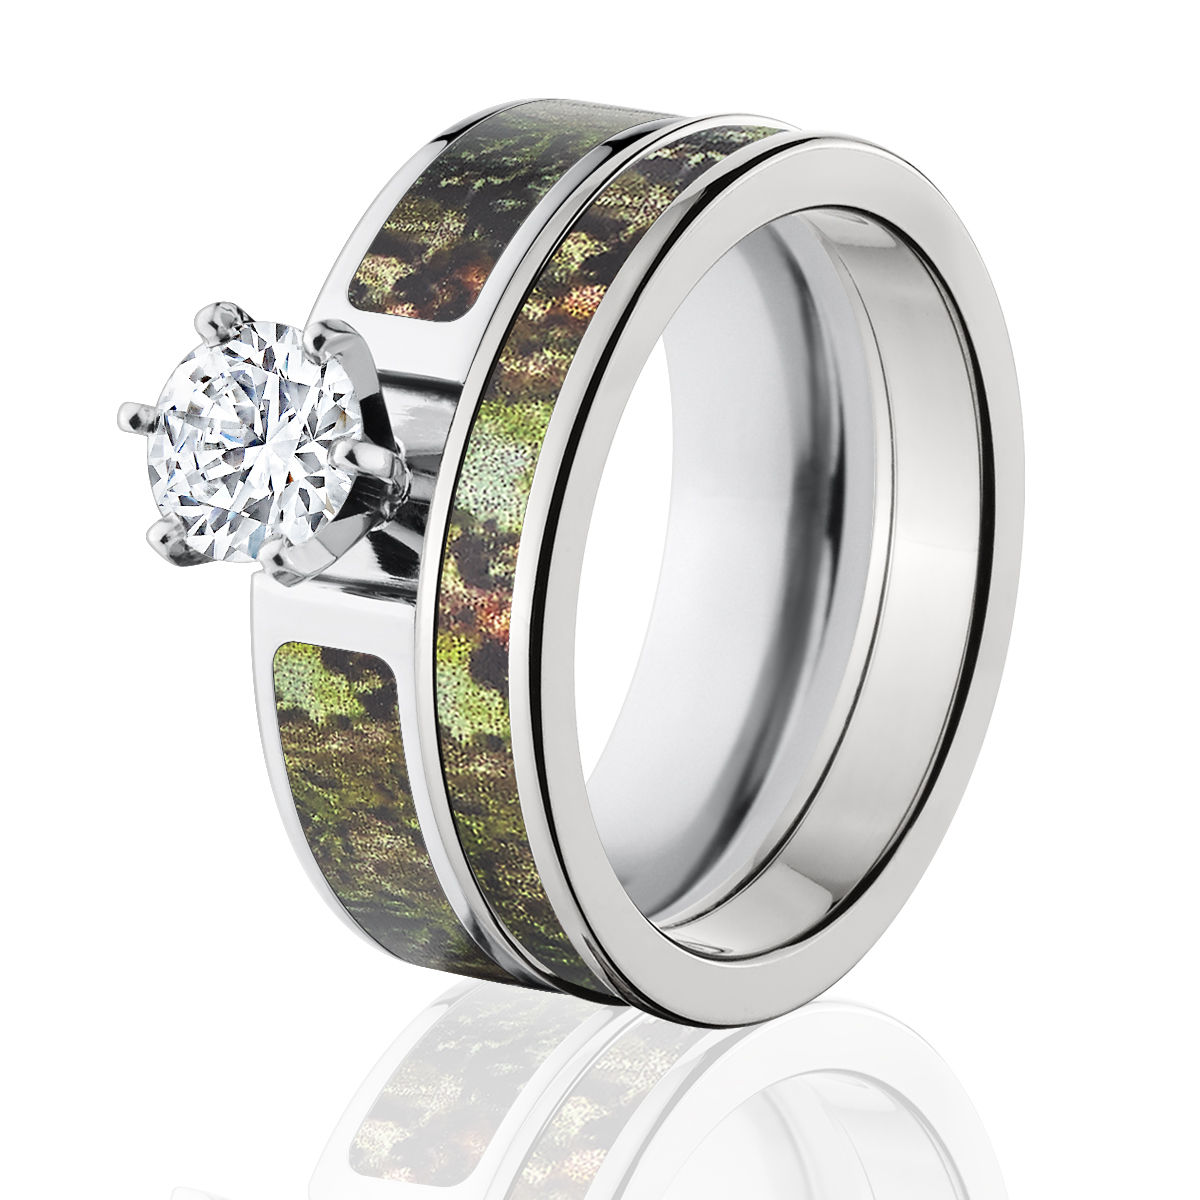 Licensed Mossy Oak Obsession Camo Bridal Set, Womens CZ Camo